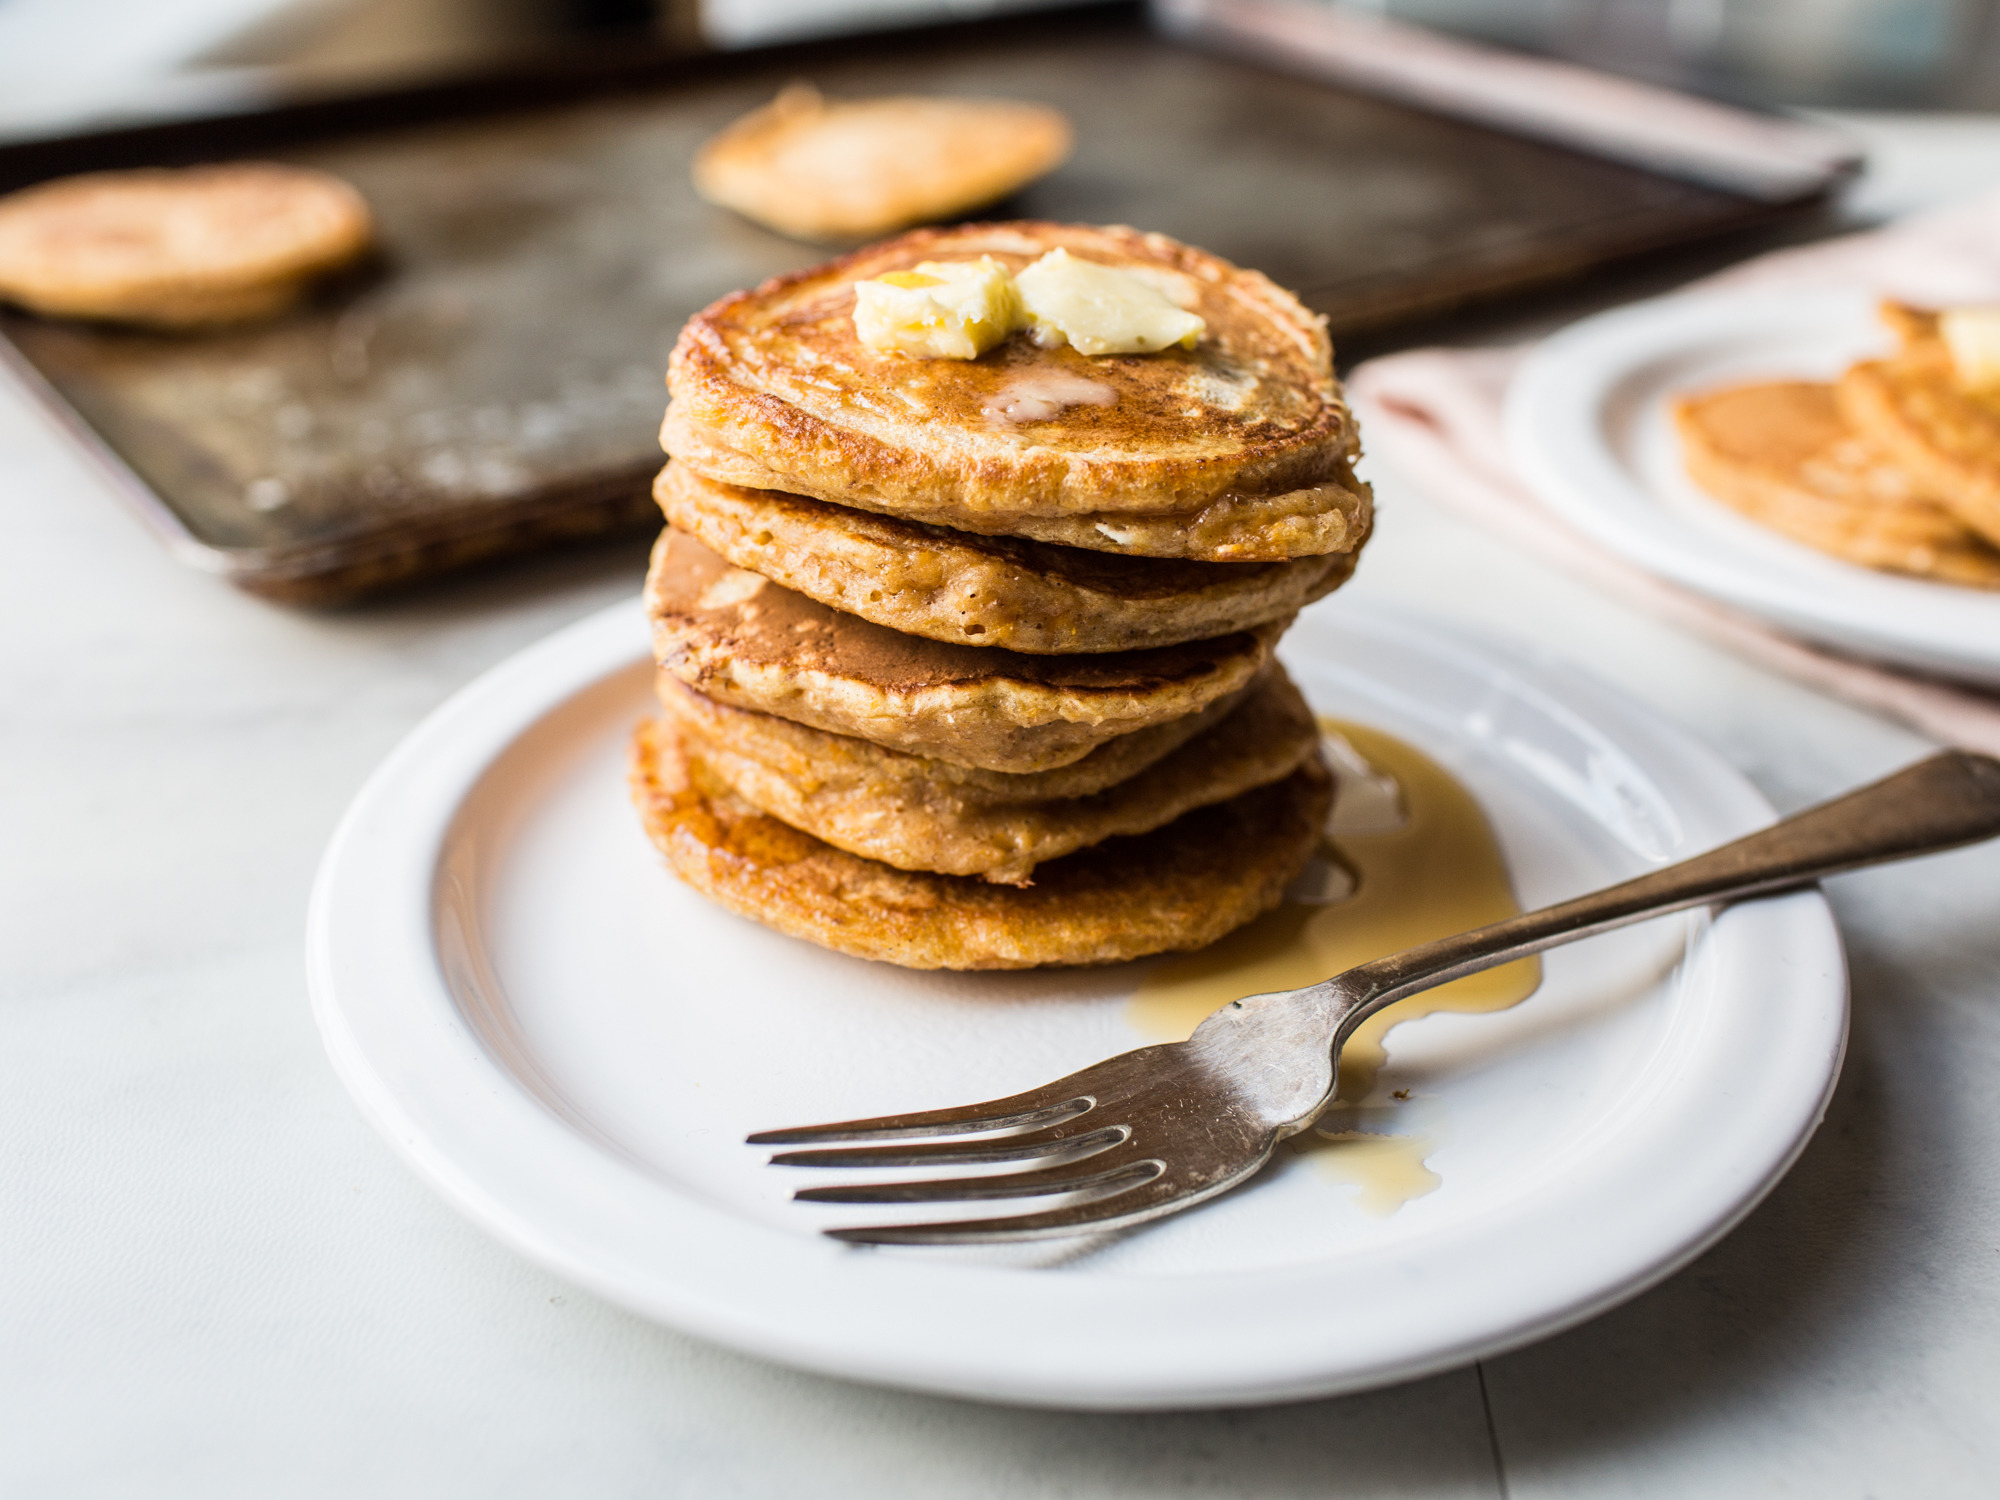 Best Homemade Pancakes And Waffles Recipes